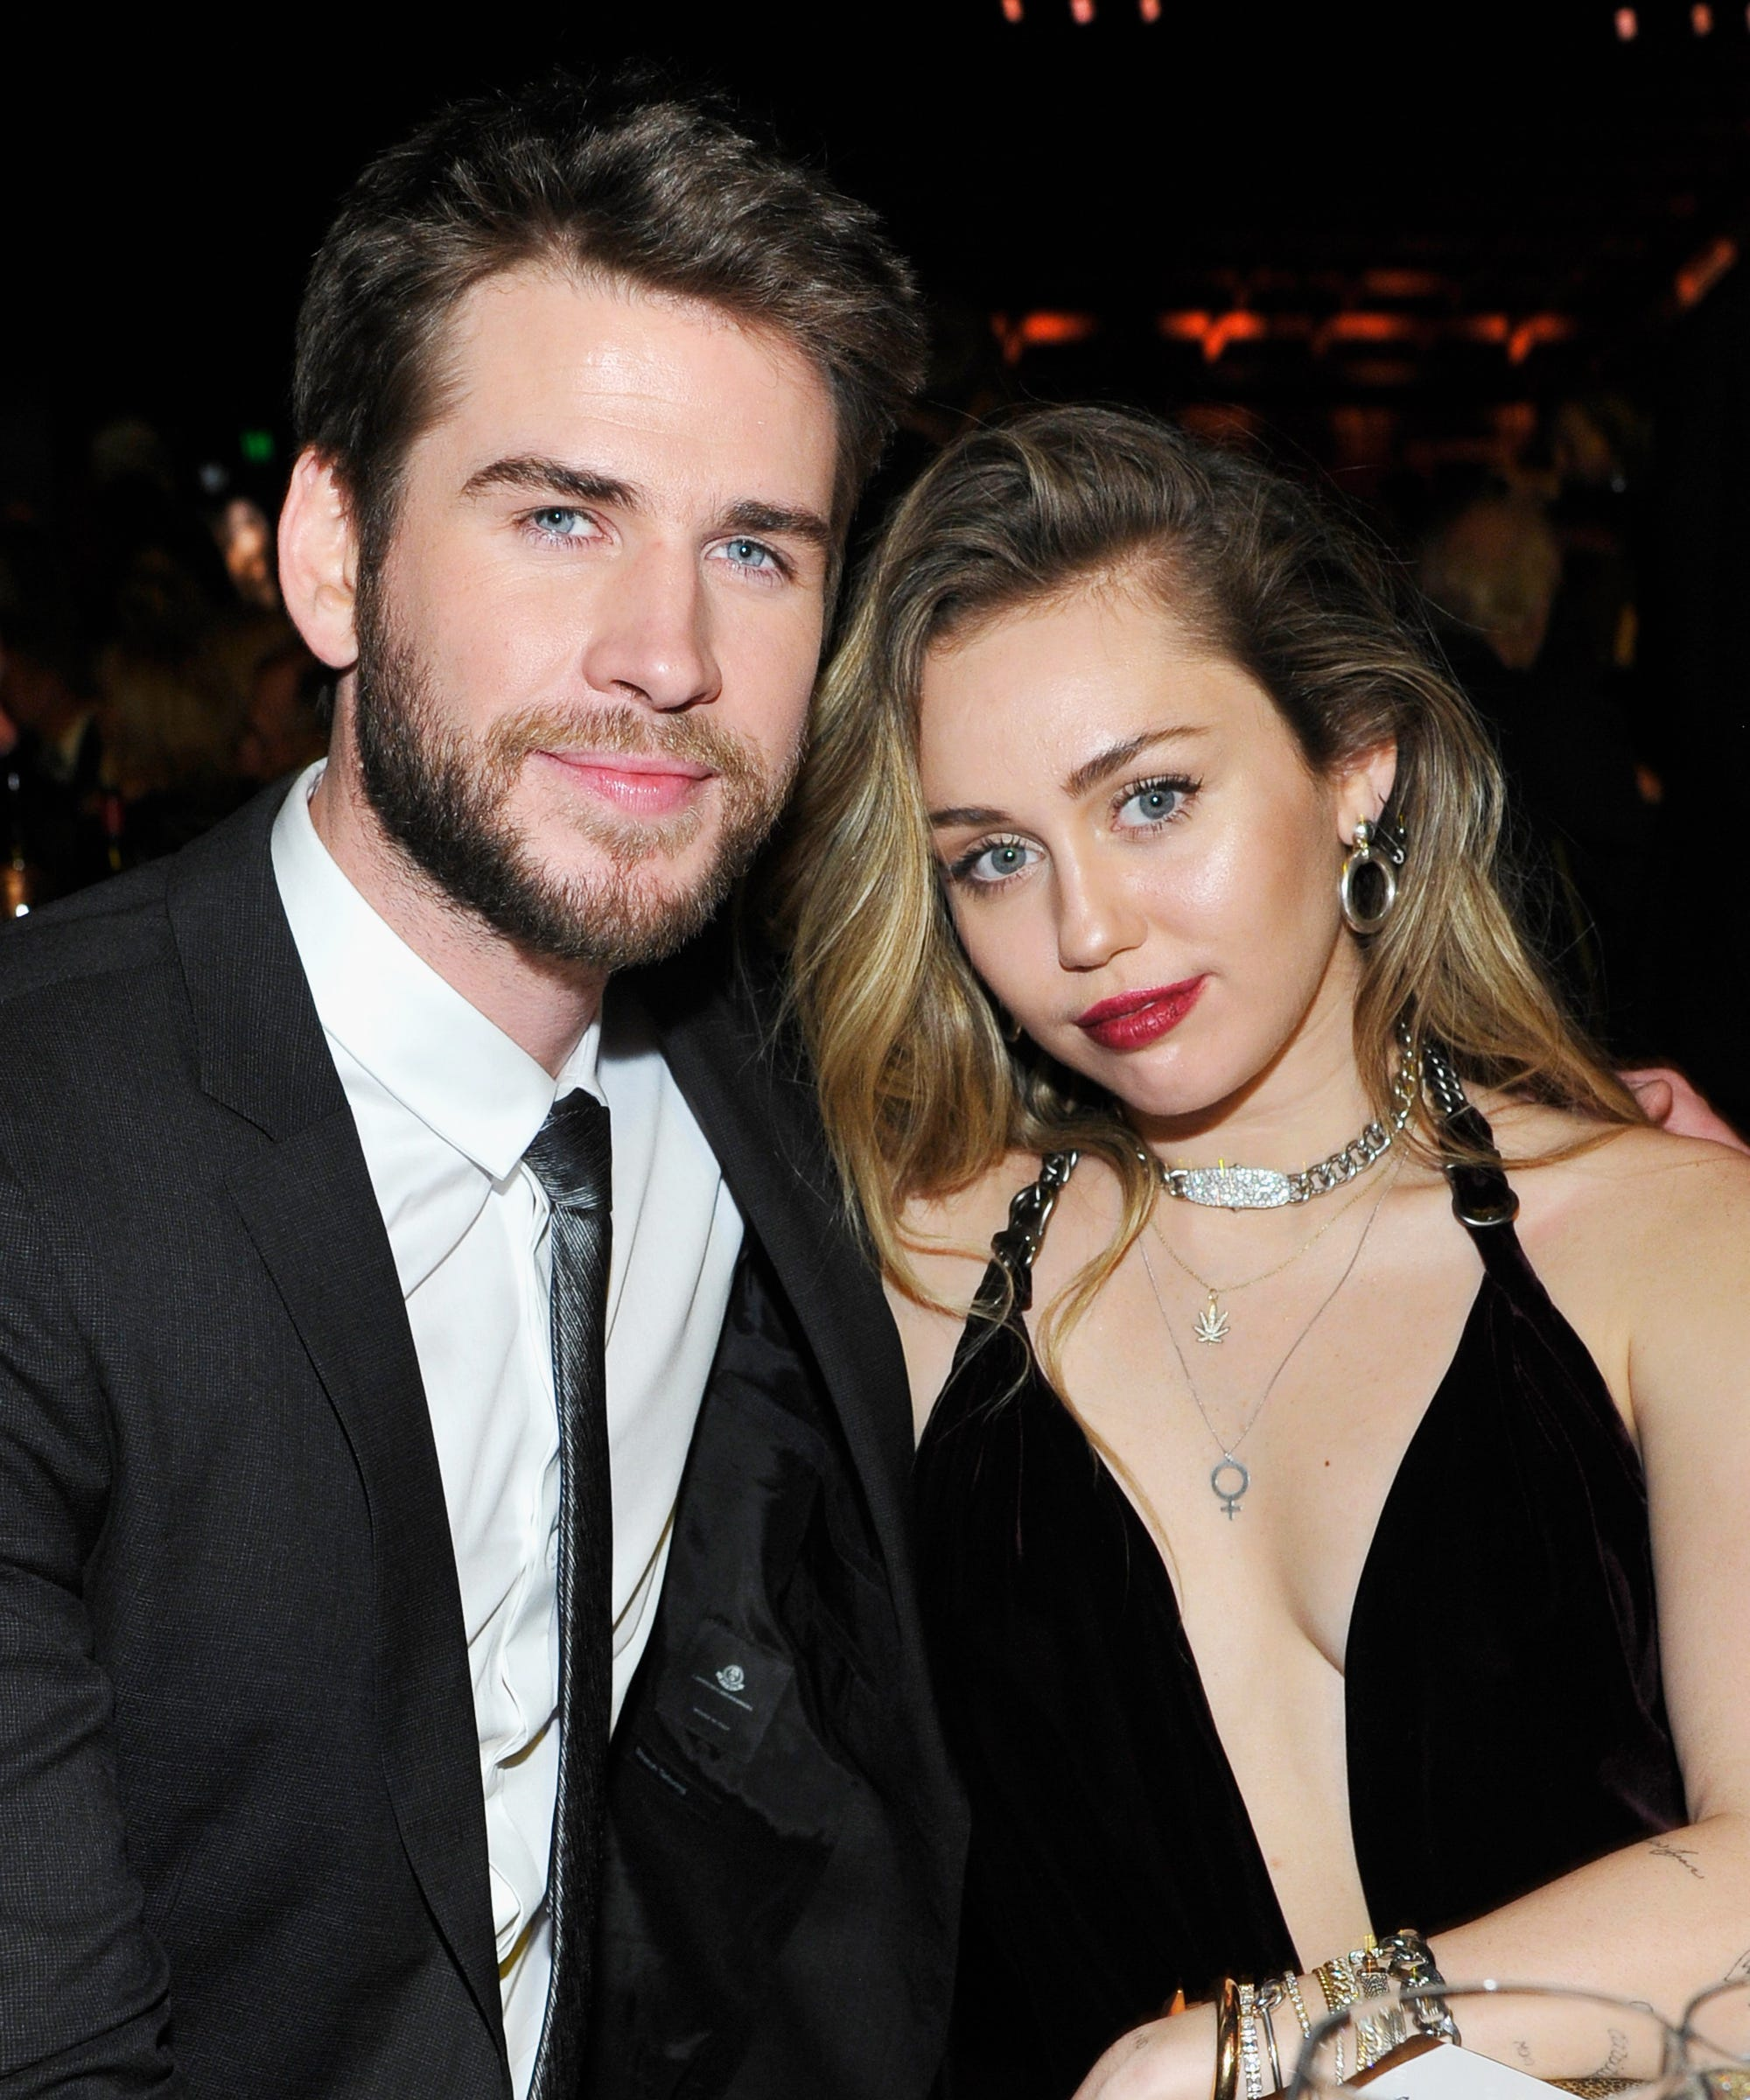 Why Miley Cyrus & Liam Hemsworth's Post-Divorce Pet Situation Is Complicated